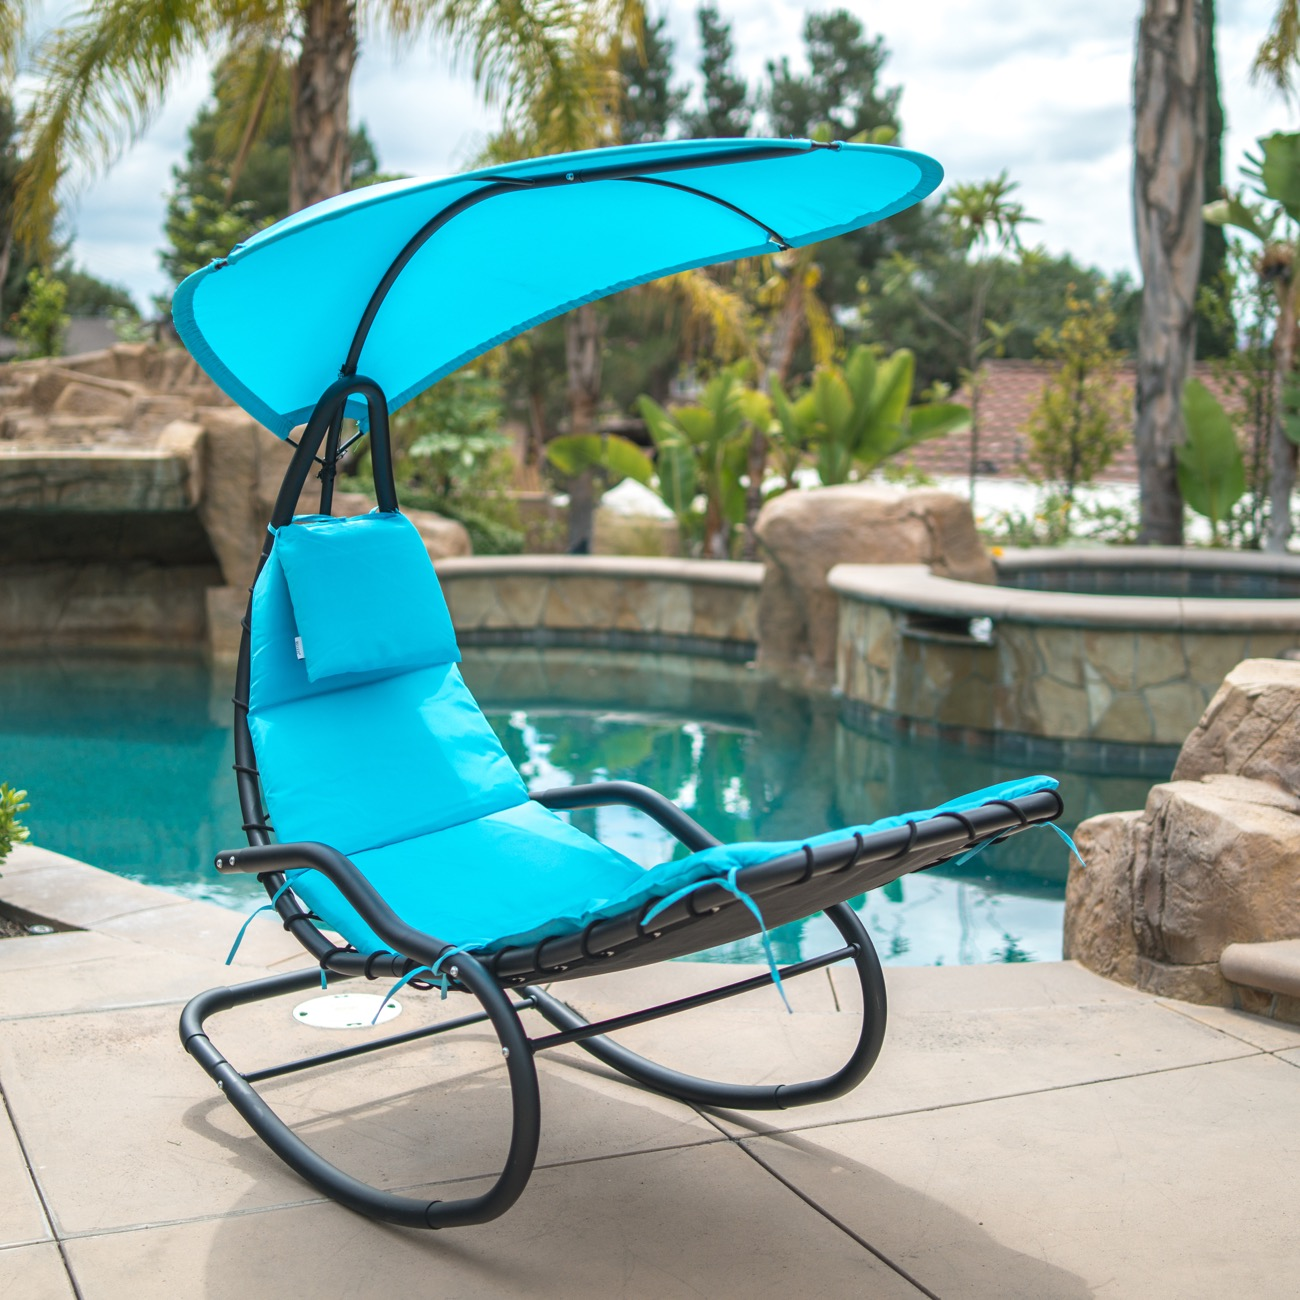 BELLEZE Hanging Rocking Sunshade Canopy Chair Chaise Umbrella Lounge Arc  Patio Bungee Padded Cushions Outdoor   Walmart.com